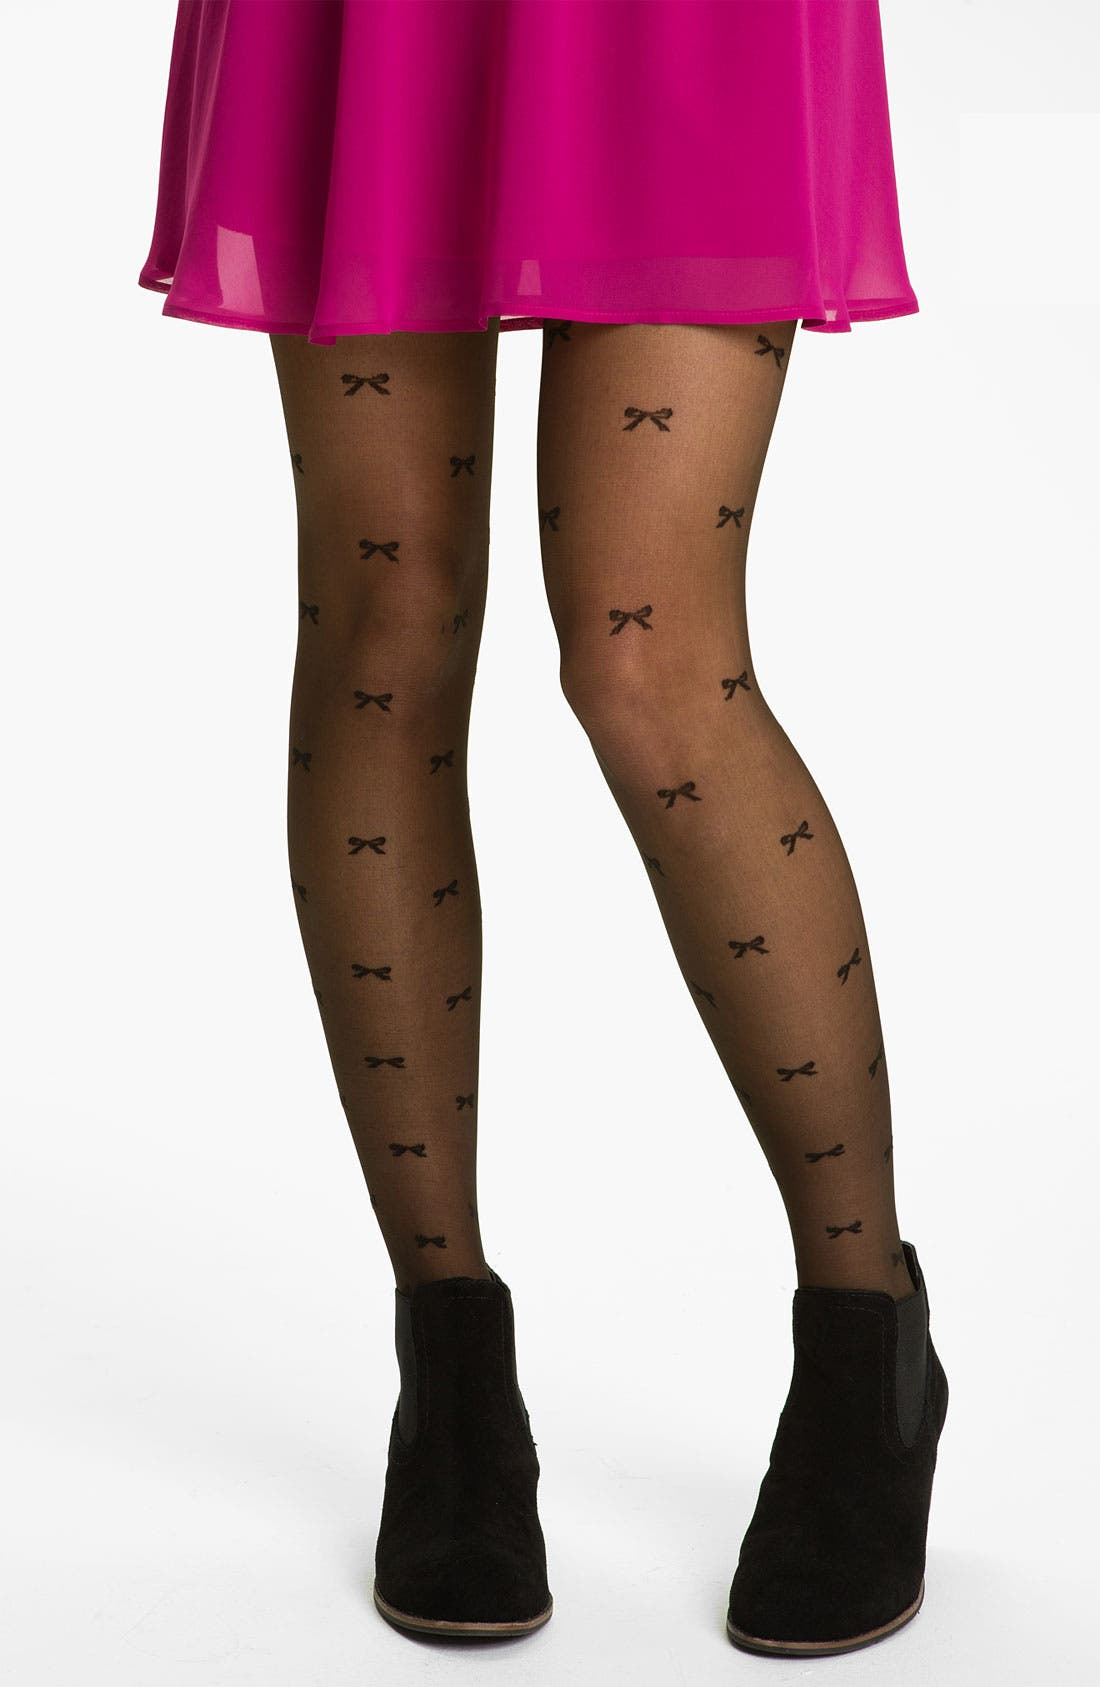 Alternate Image 1 Selected - Frenchi® Bow Print Sheer Tights (Juniors)